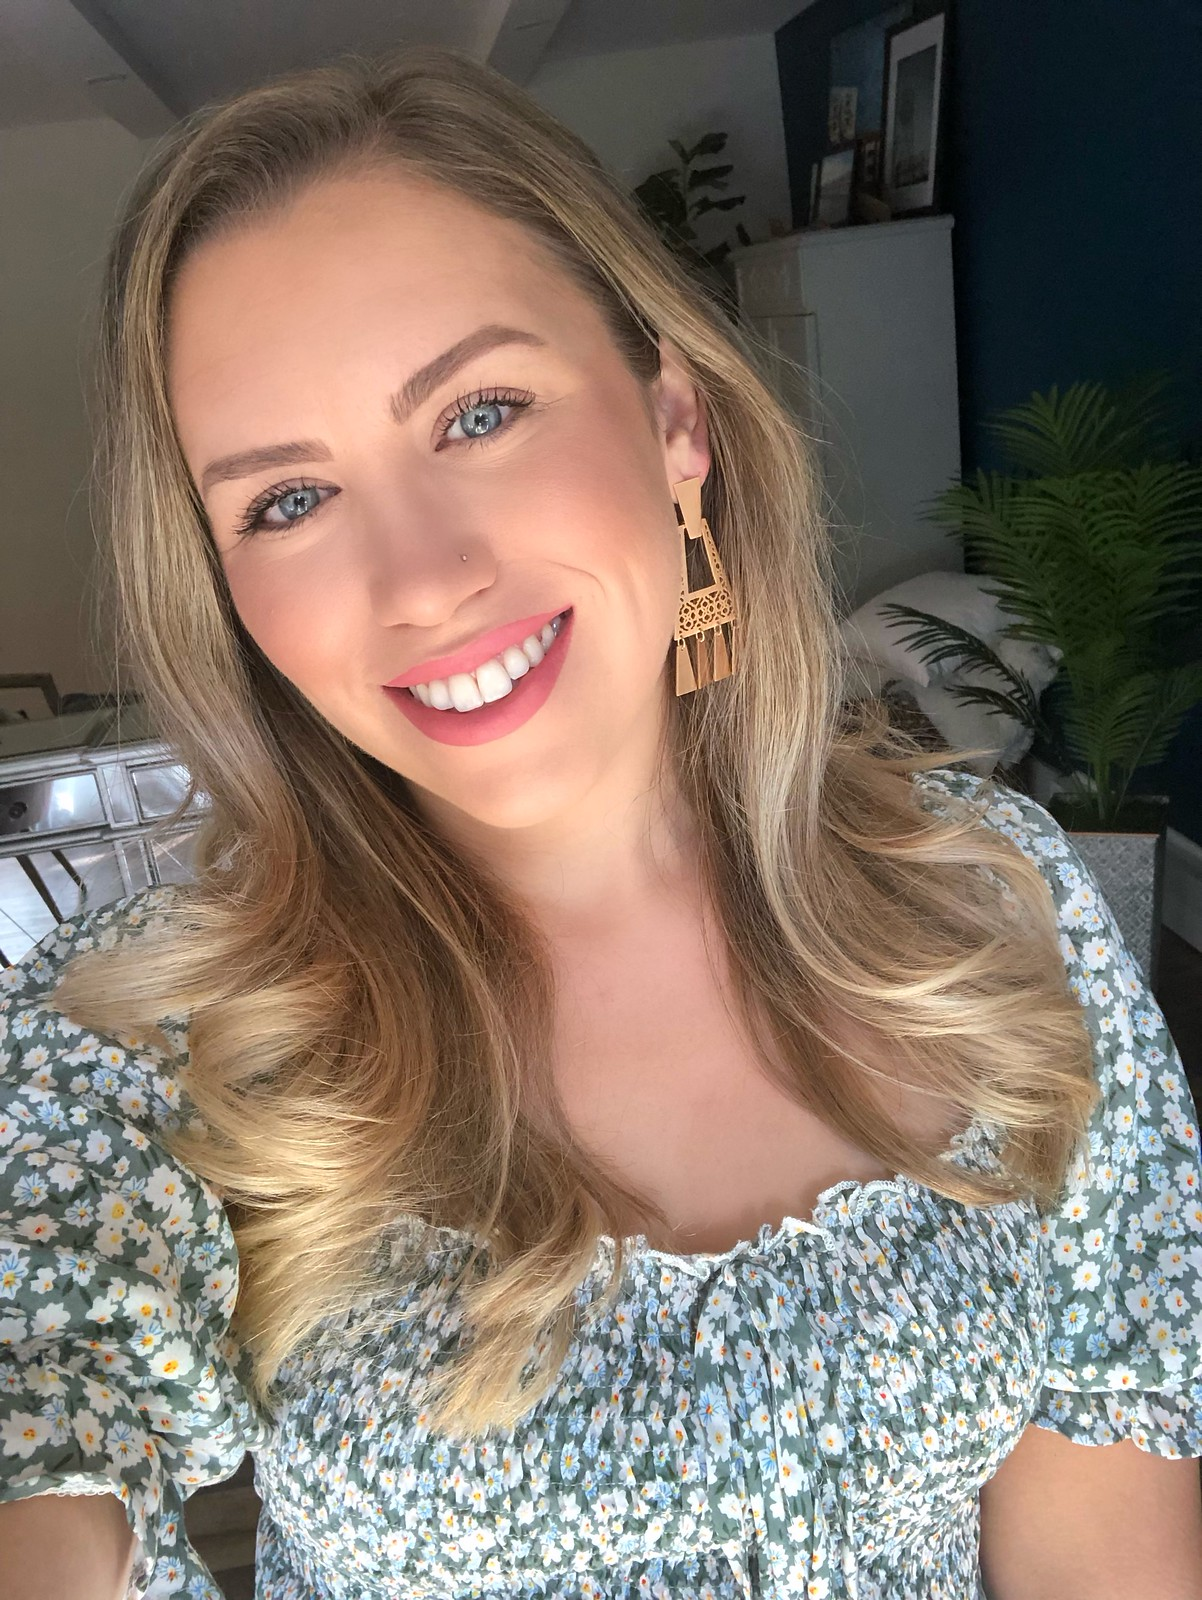 Everyday Makeup Jackie Giardina | Kendra Scott Kase Bright Silver Fringe Earrings | August 2019 Round Up